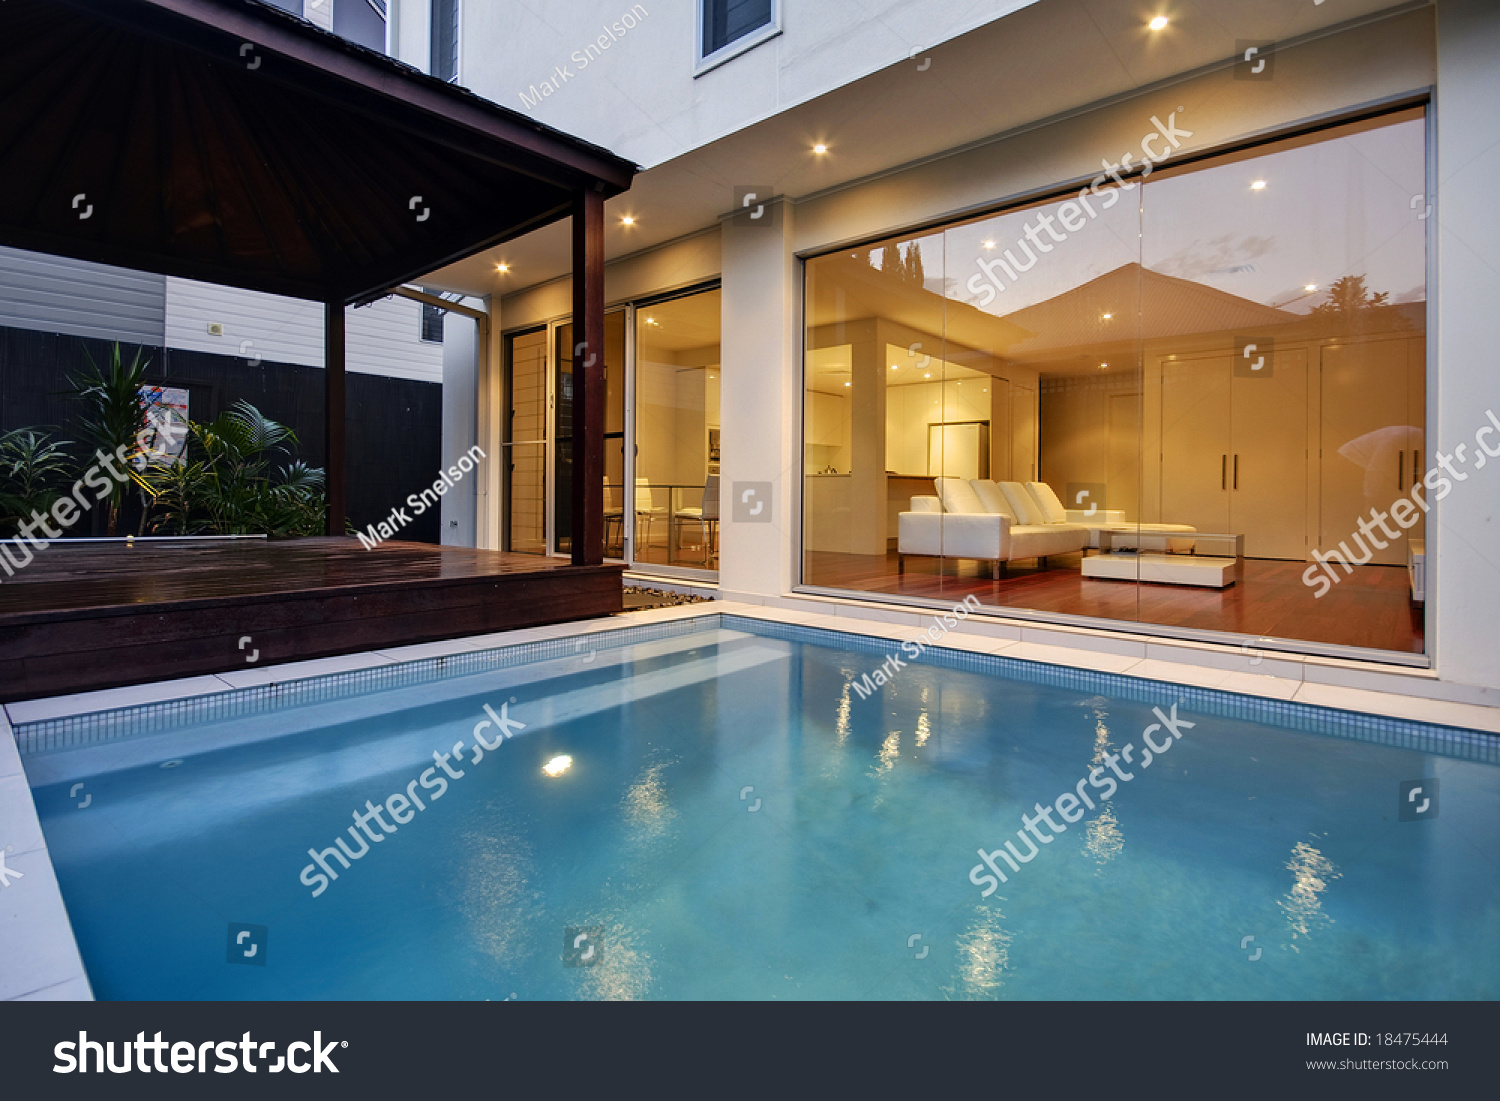 Pool area of a luxury terrace house stock photo 18475444 for Luxury pool area